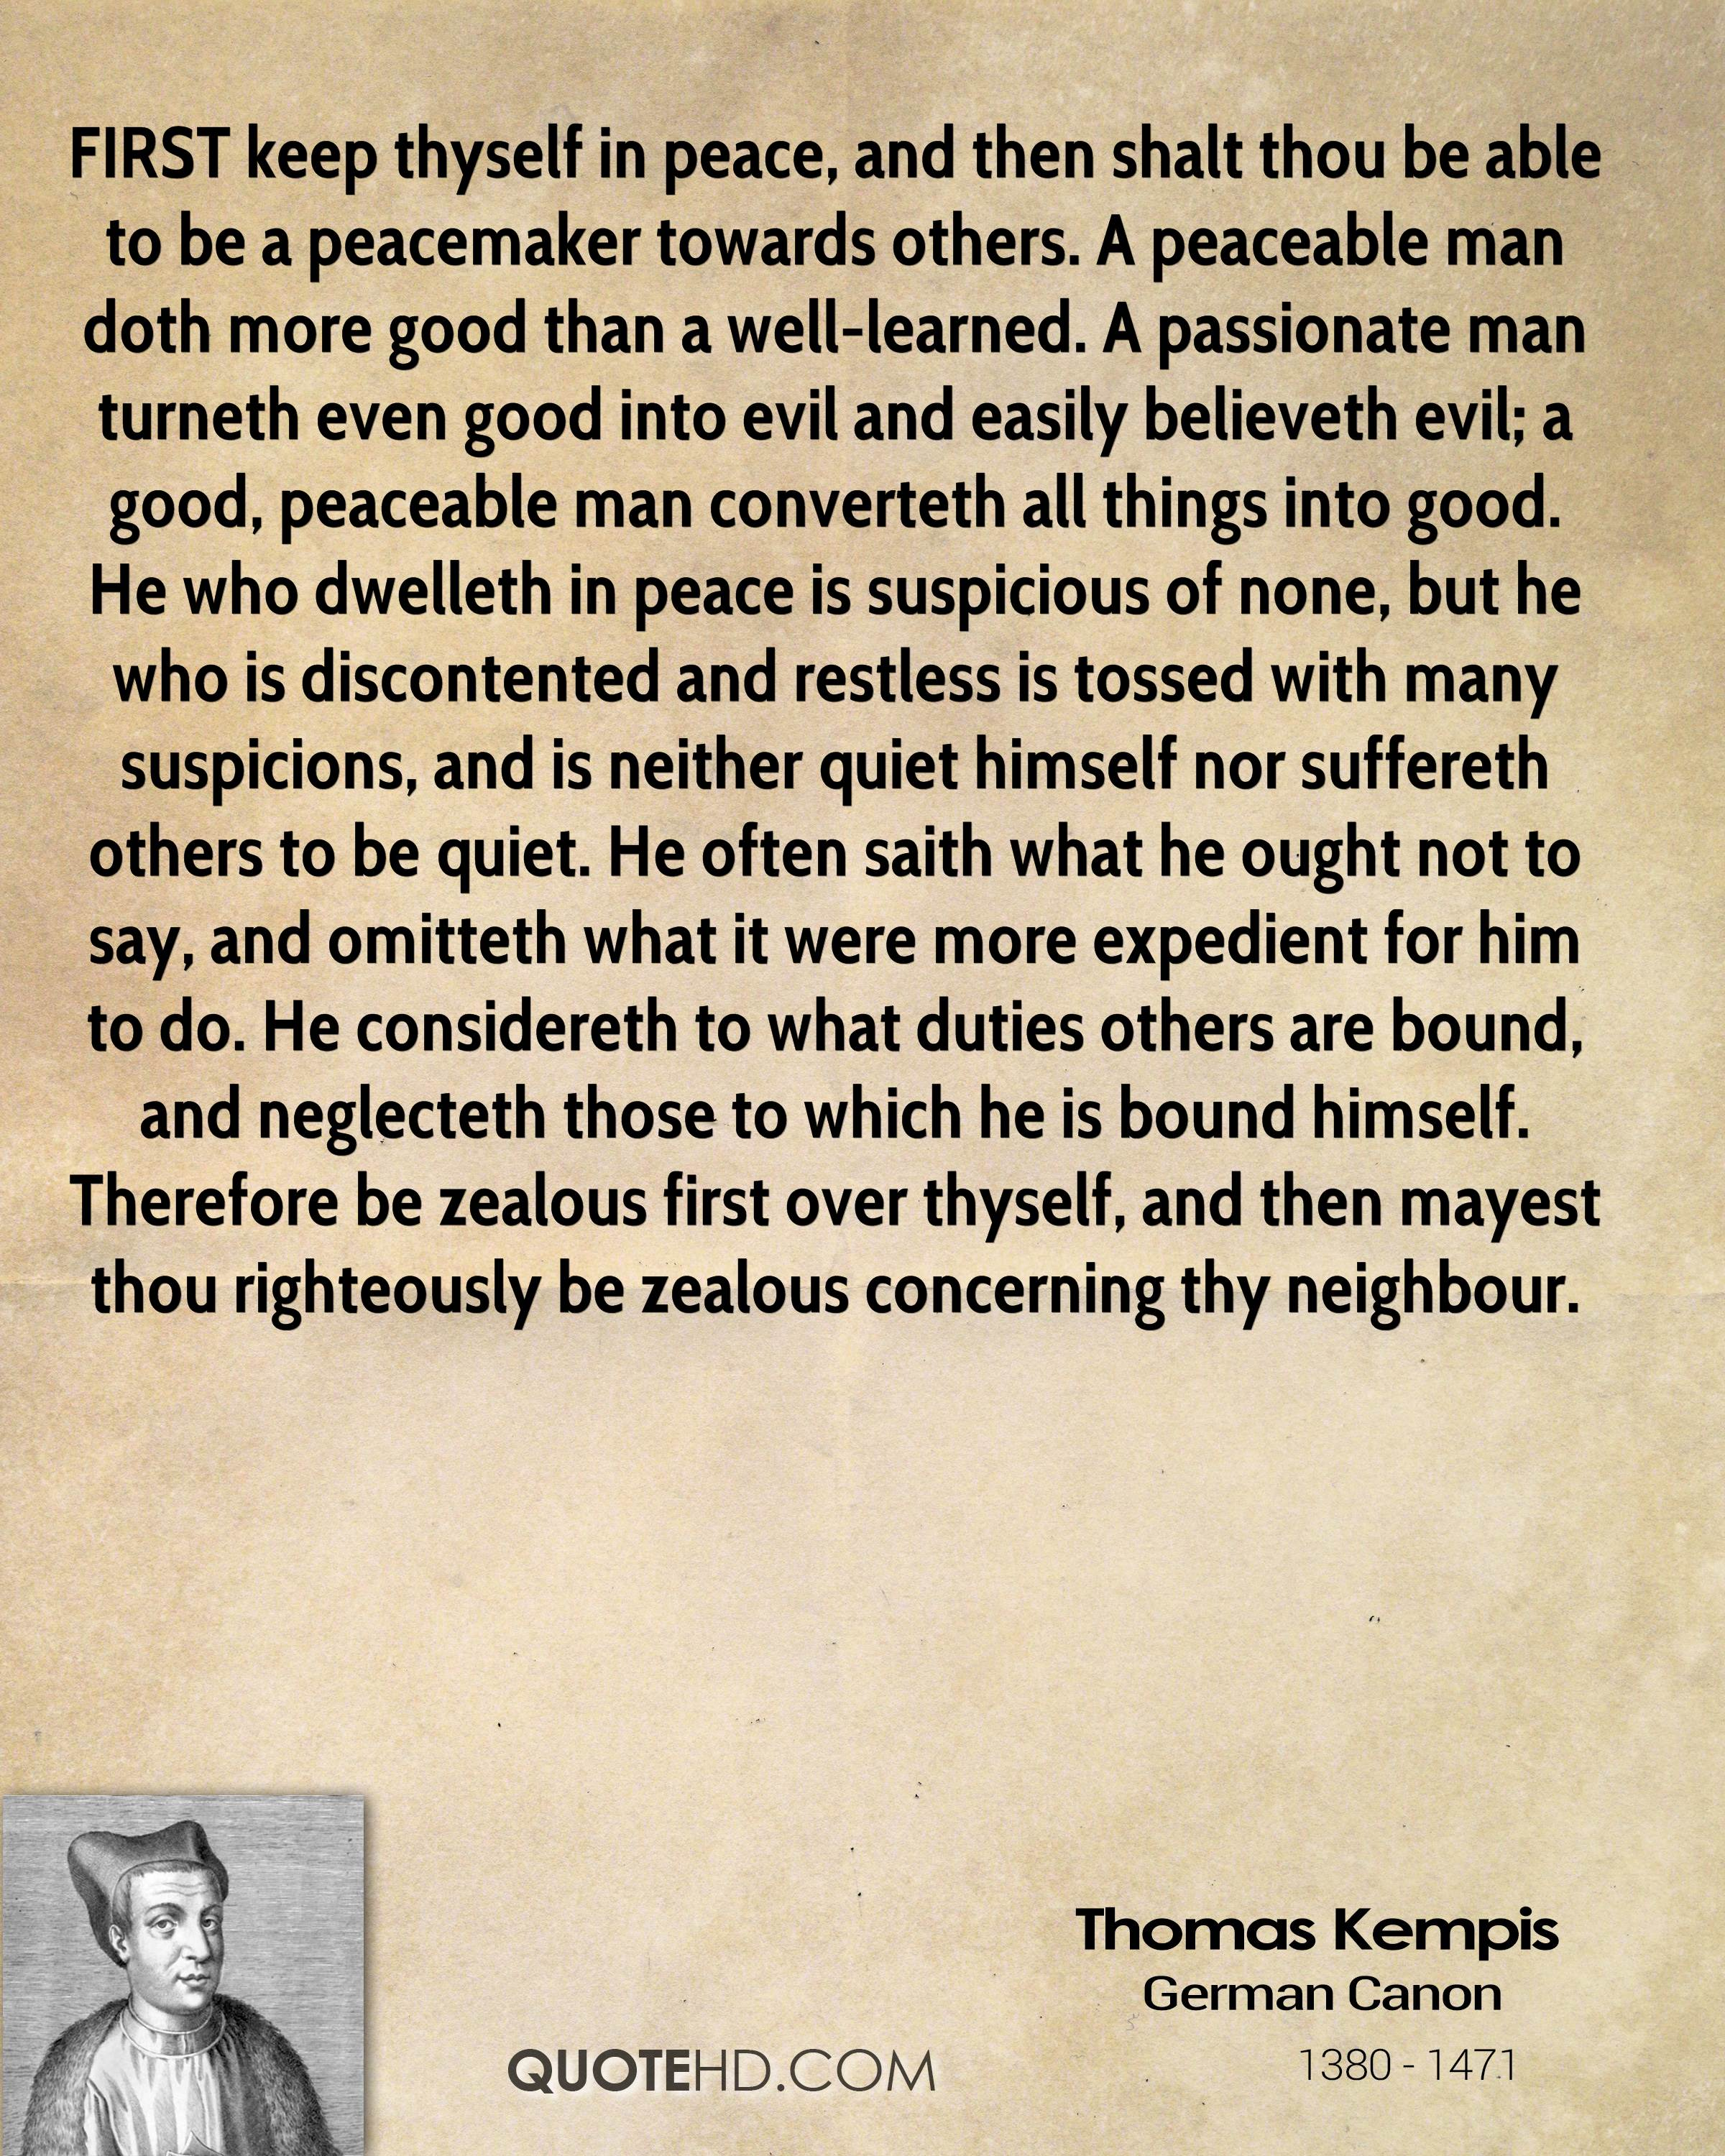 Peacemaker Quotes Thomas Kempis Quotes  Quotehd